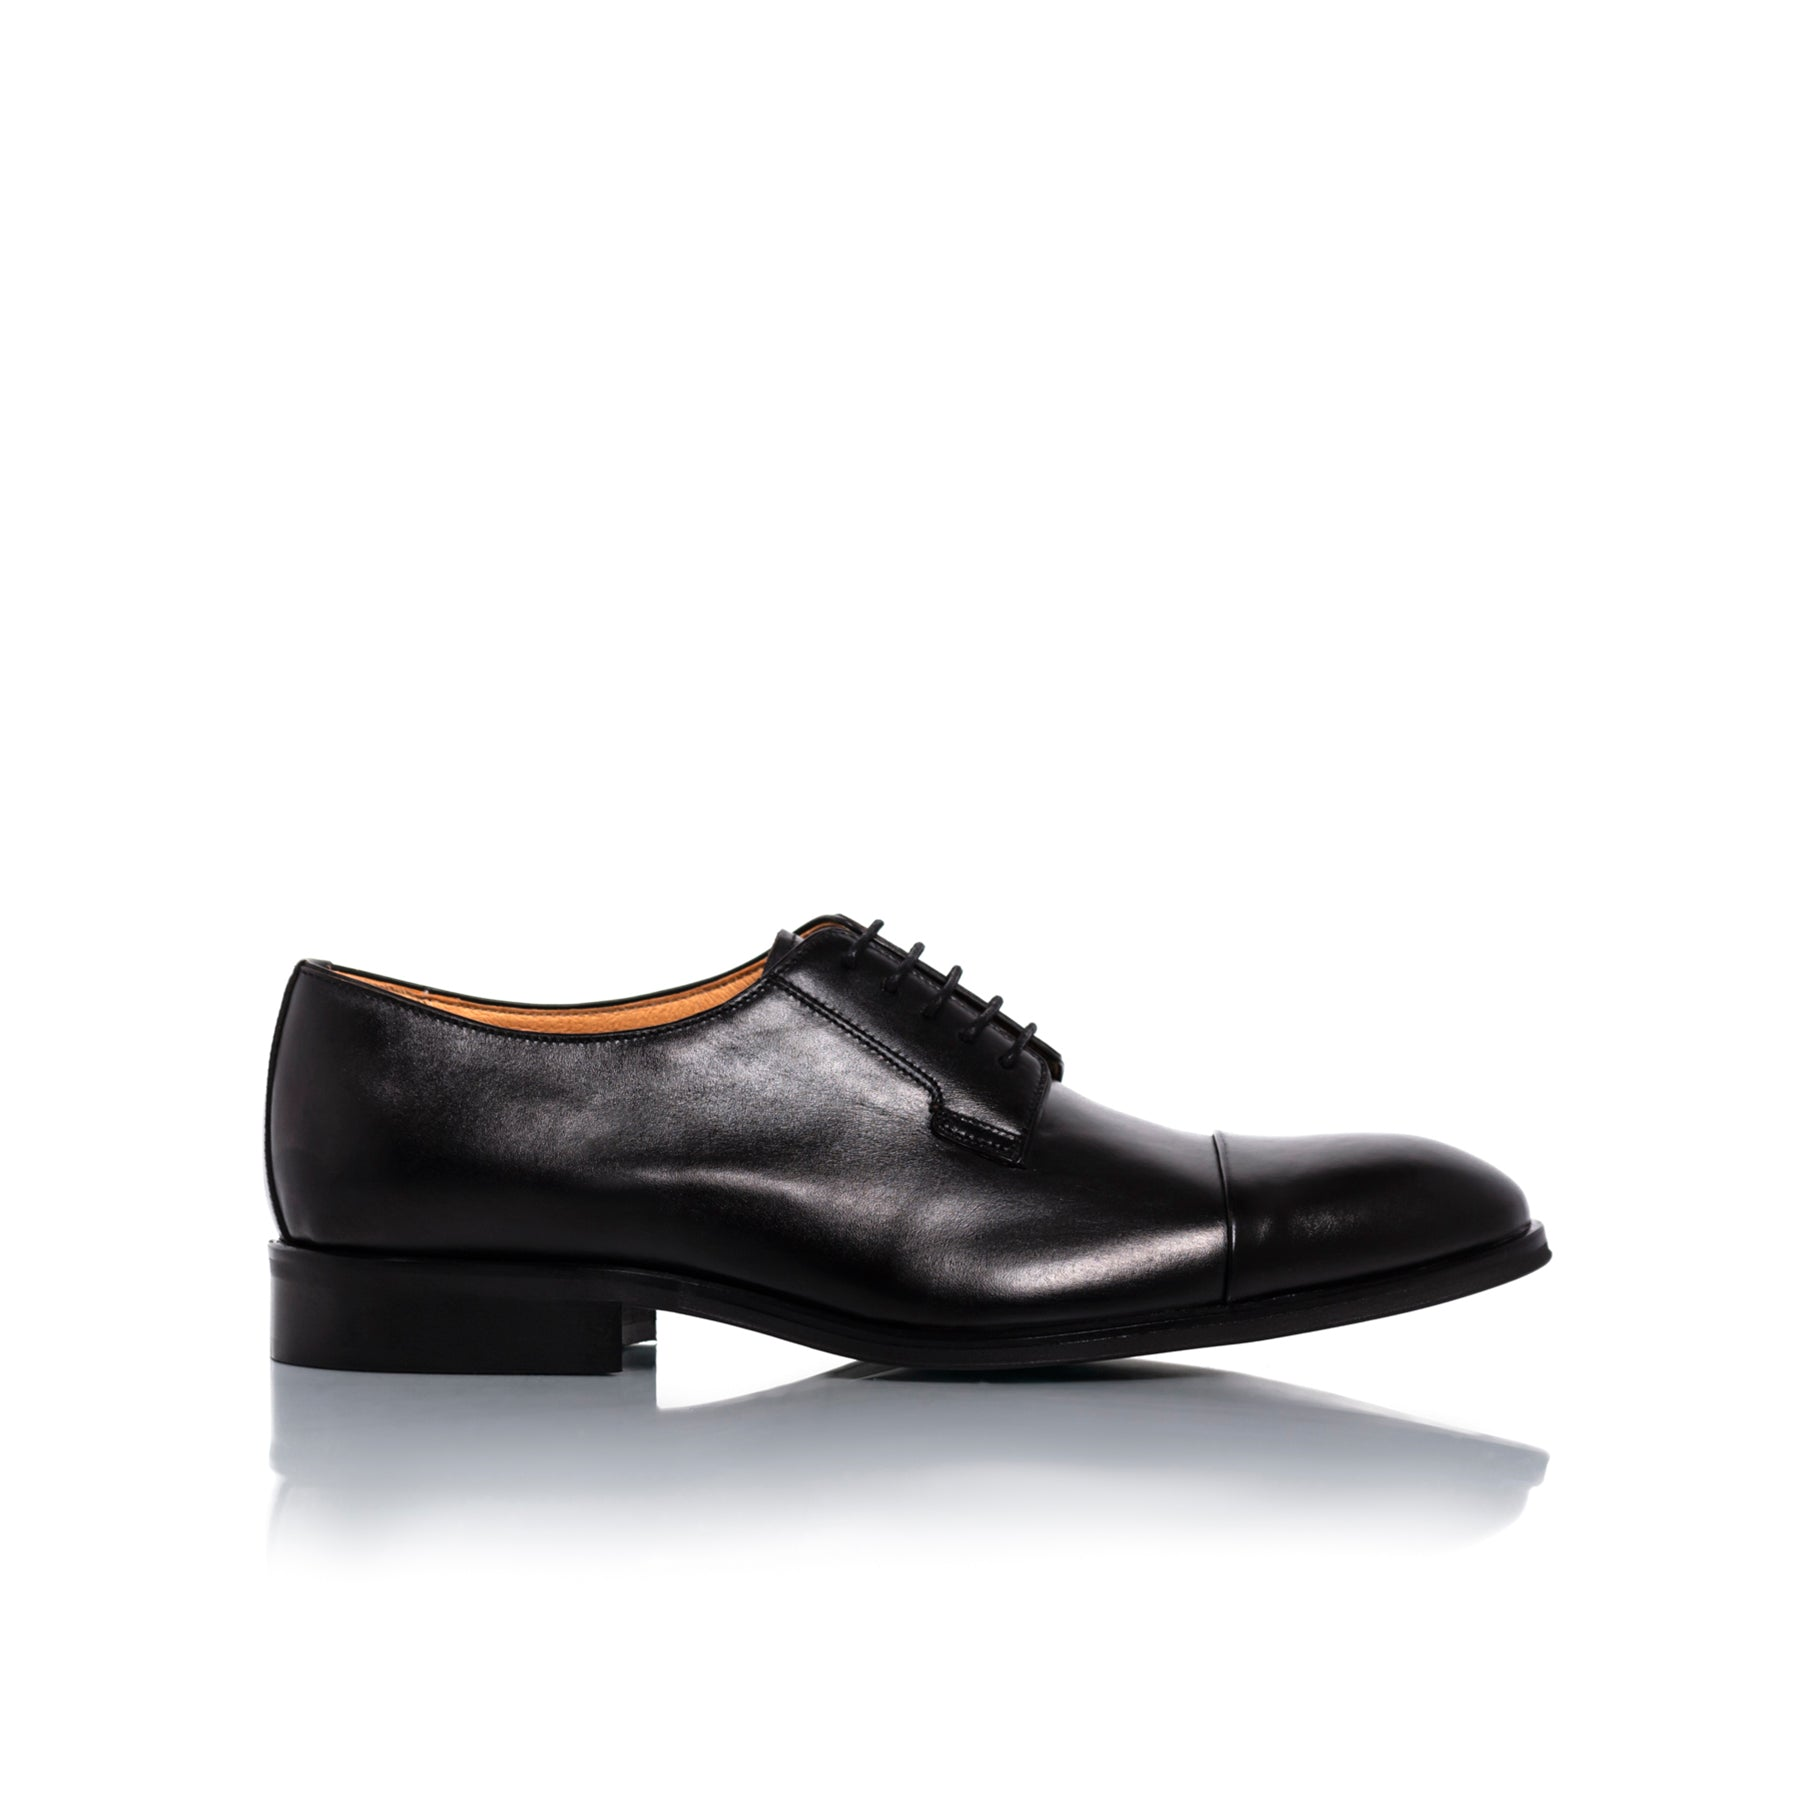 Barack Black Leather Shoes